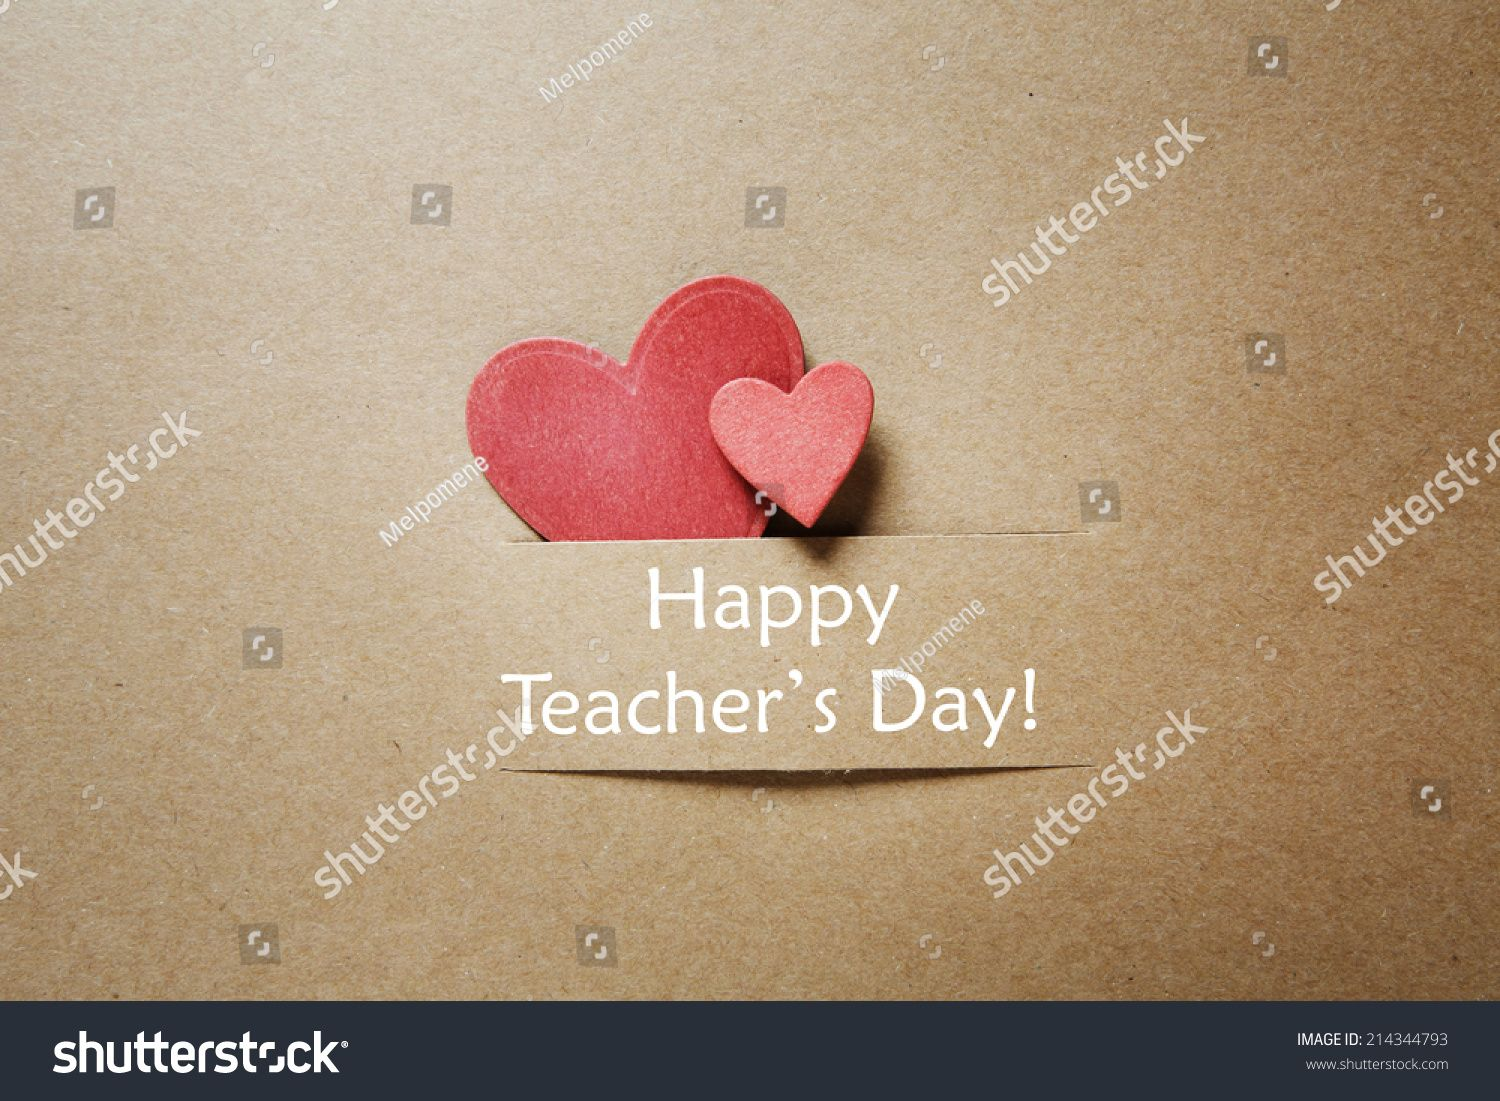 Hand Crafted Teacher S Day Greeting Card With Little Red Heats Teachers Day Greetings Teachers Day Greeting Card Happy Teachers Day